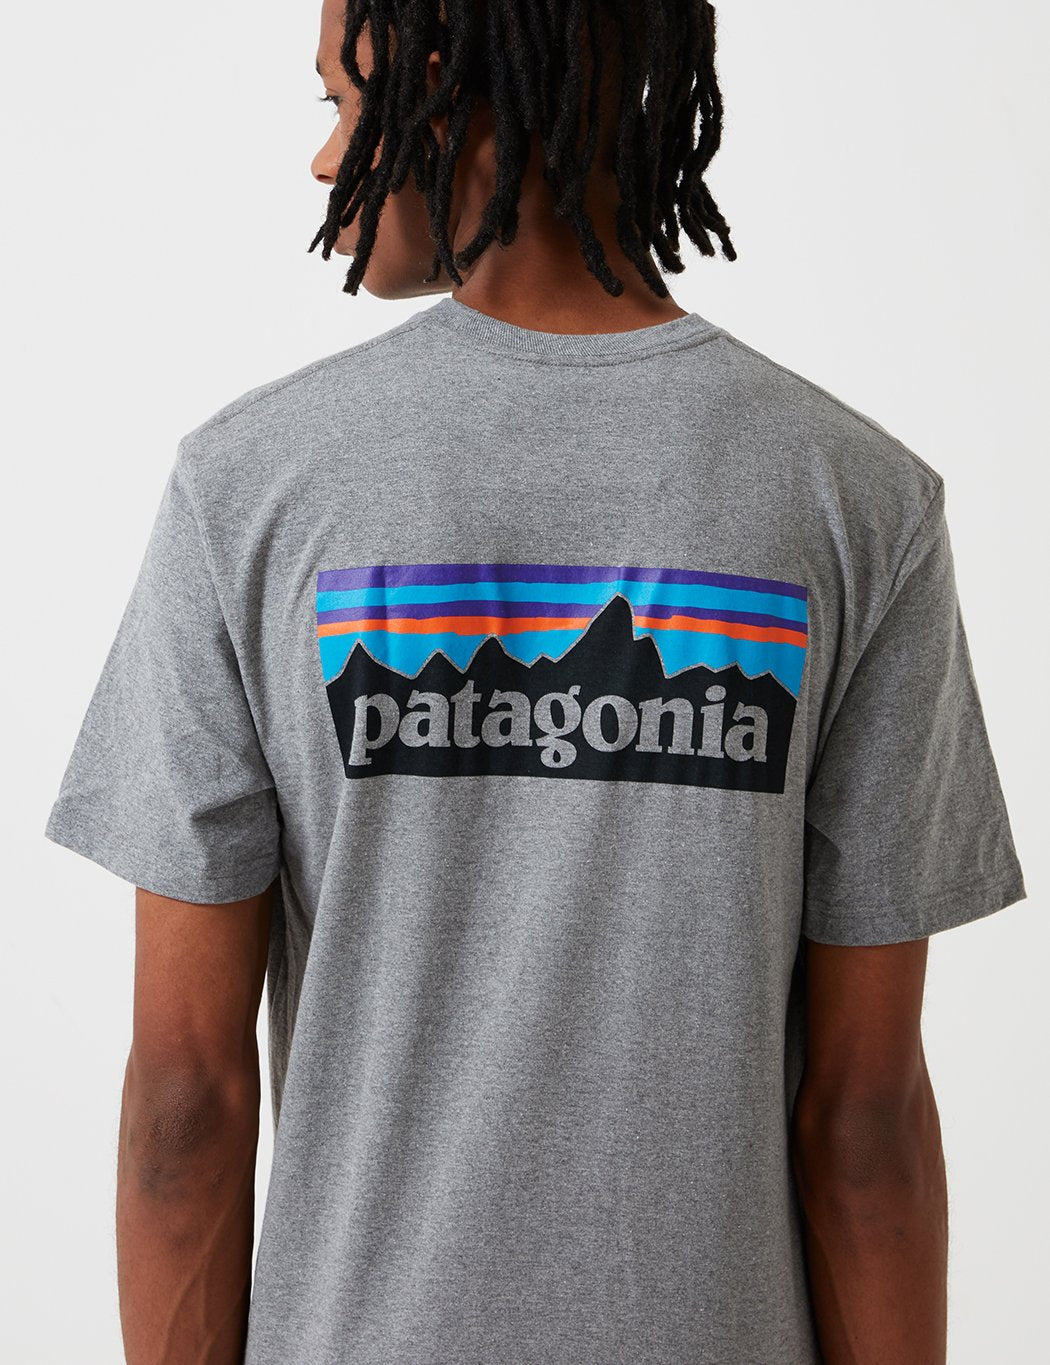 Patagonia P-6 Logo Pocket Responsibili-Tee T-Shirt - Gravel Heather Grey